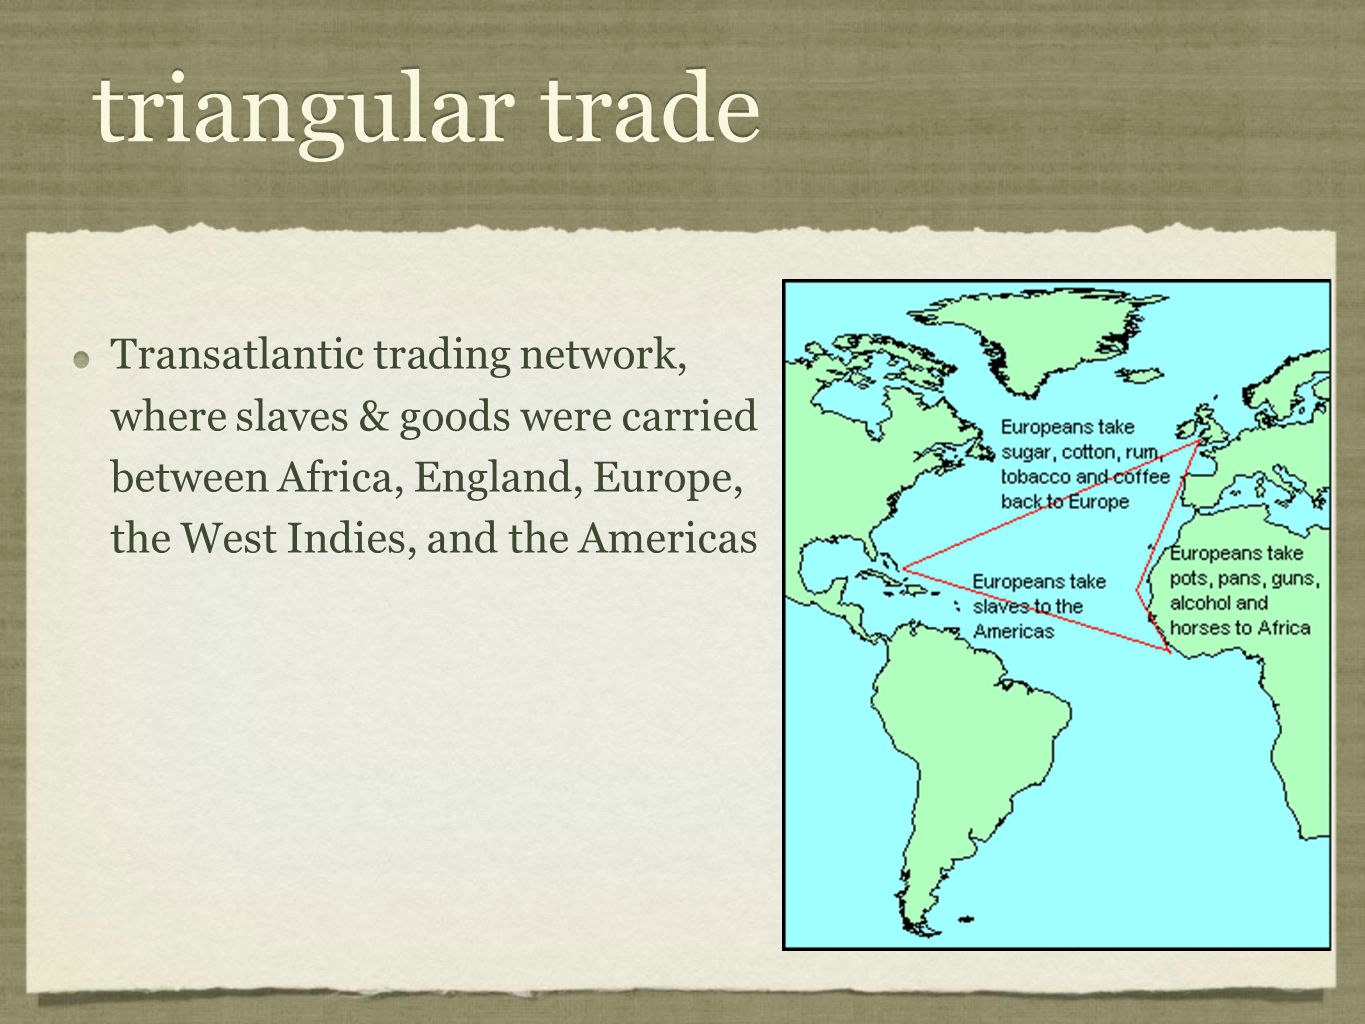 triangular trade Transatlantic trading network, where slaves & goods were carried between Africa, England, Europe, the West Indies, and the Americas